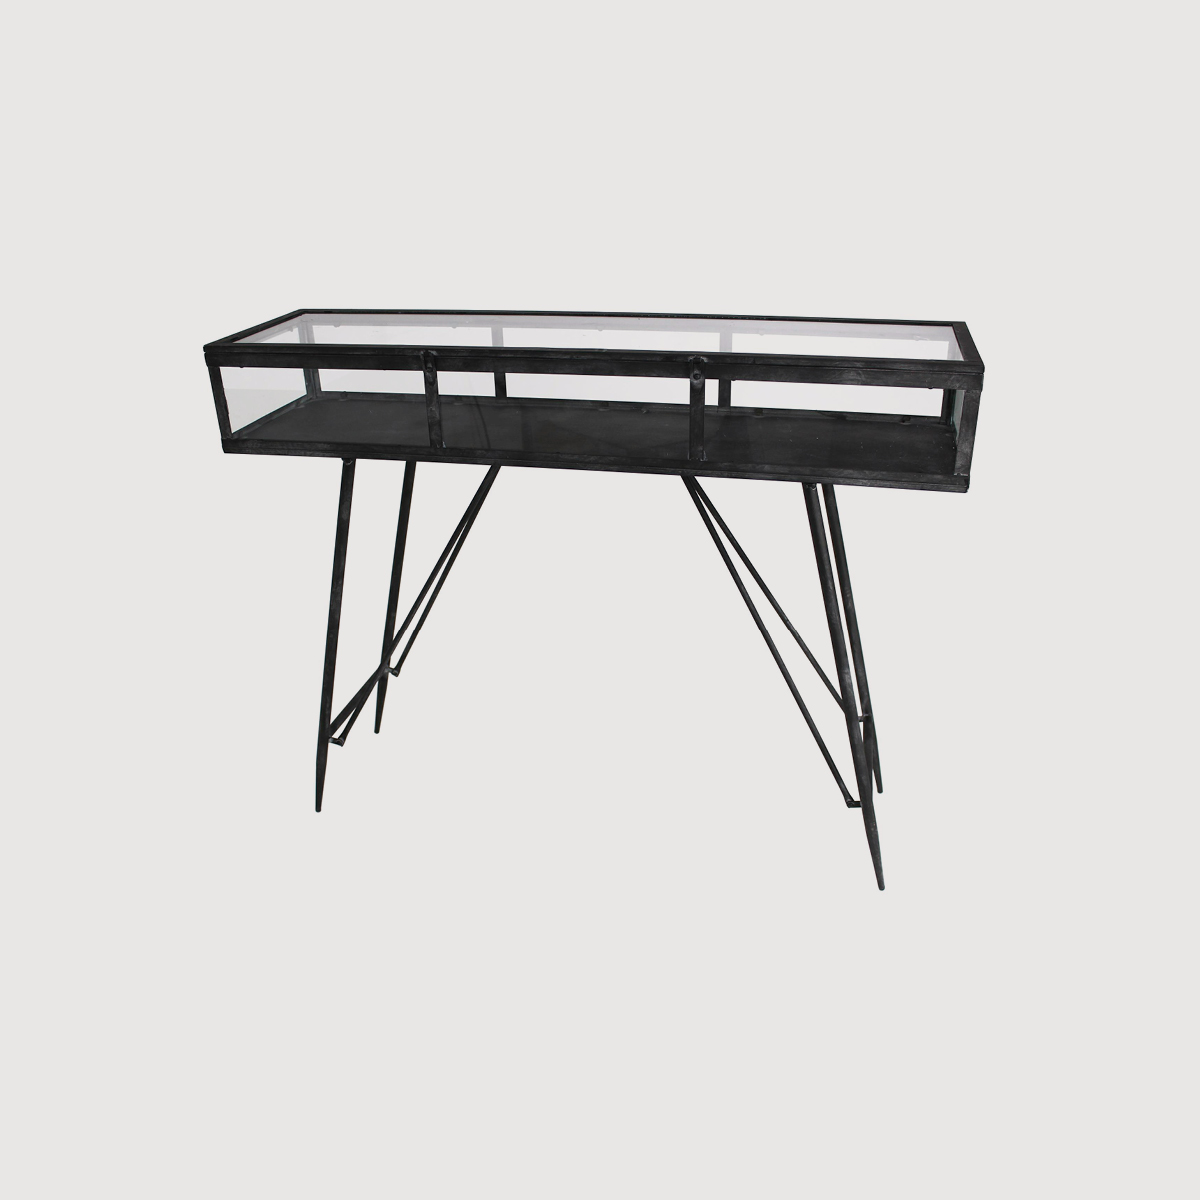 Cohan Console Cabinet Table – Black gallery image